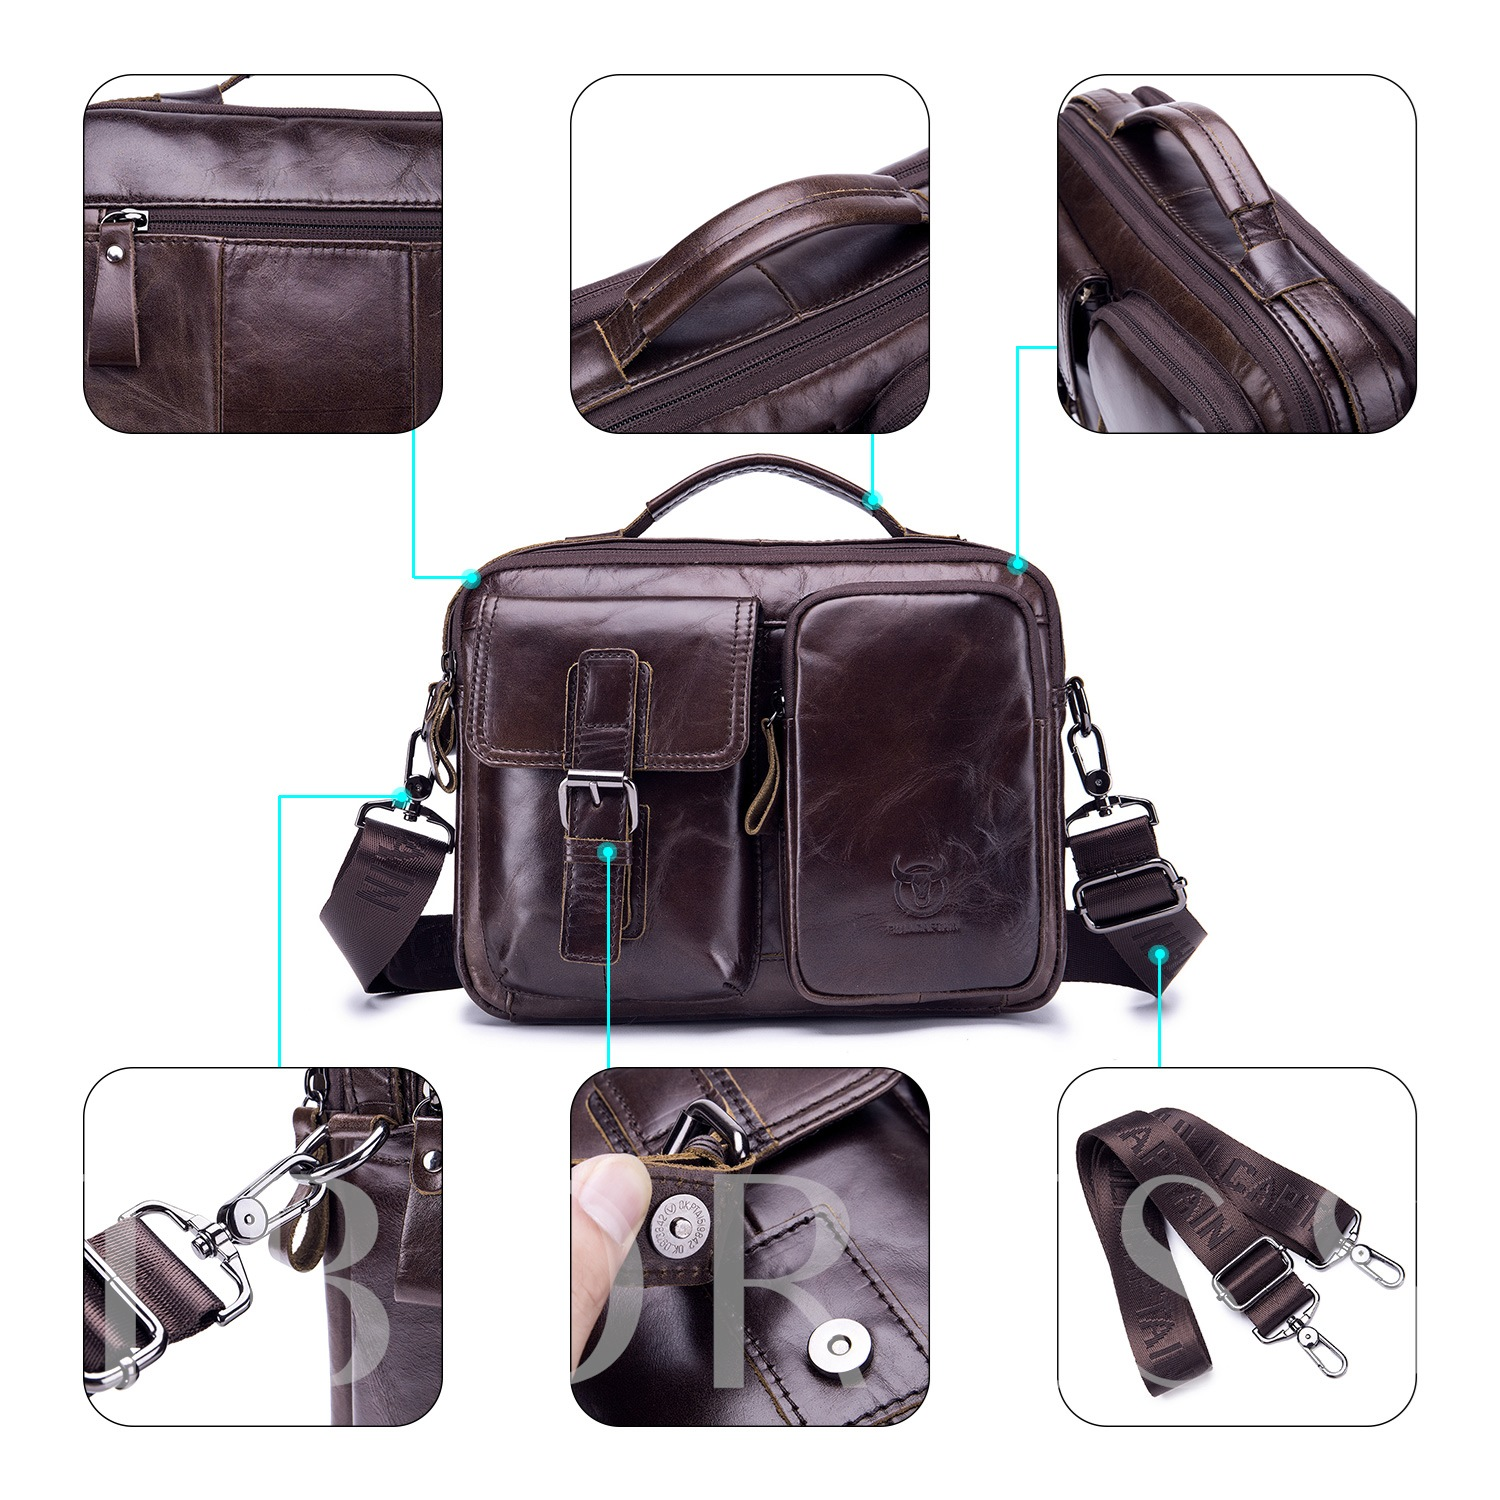 European Plain Leather Rectangle Crossbody Bags